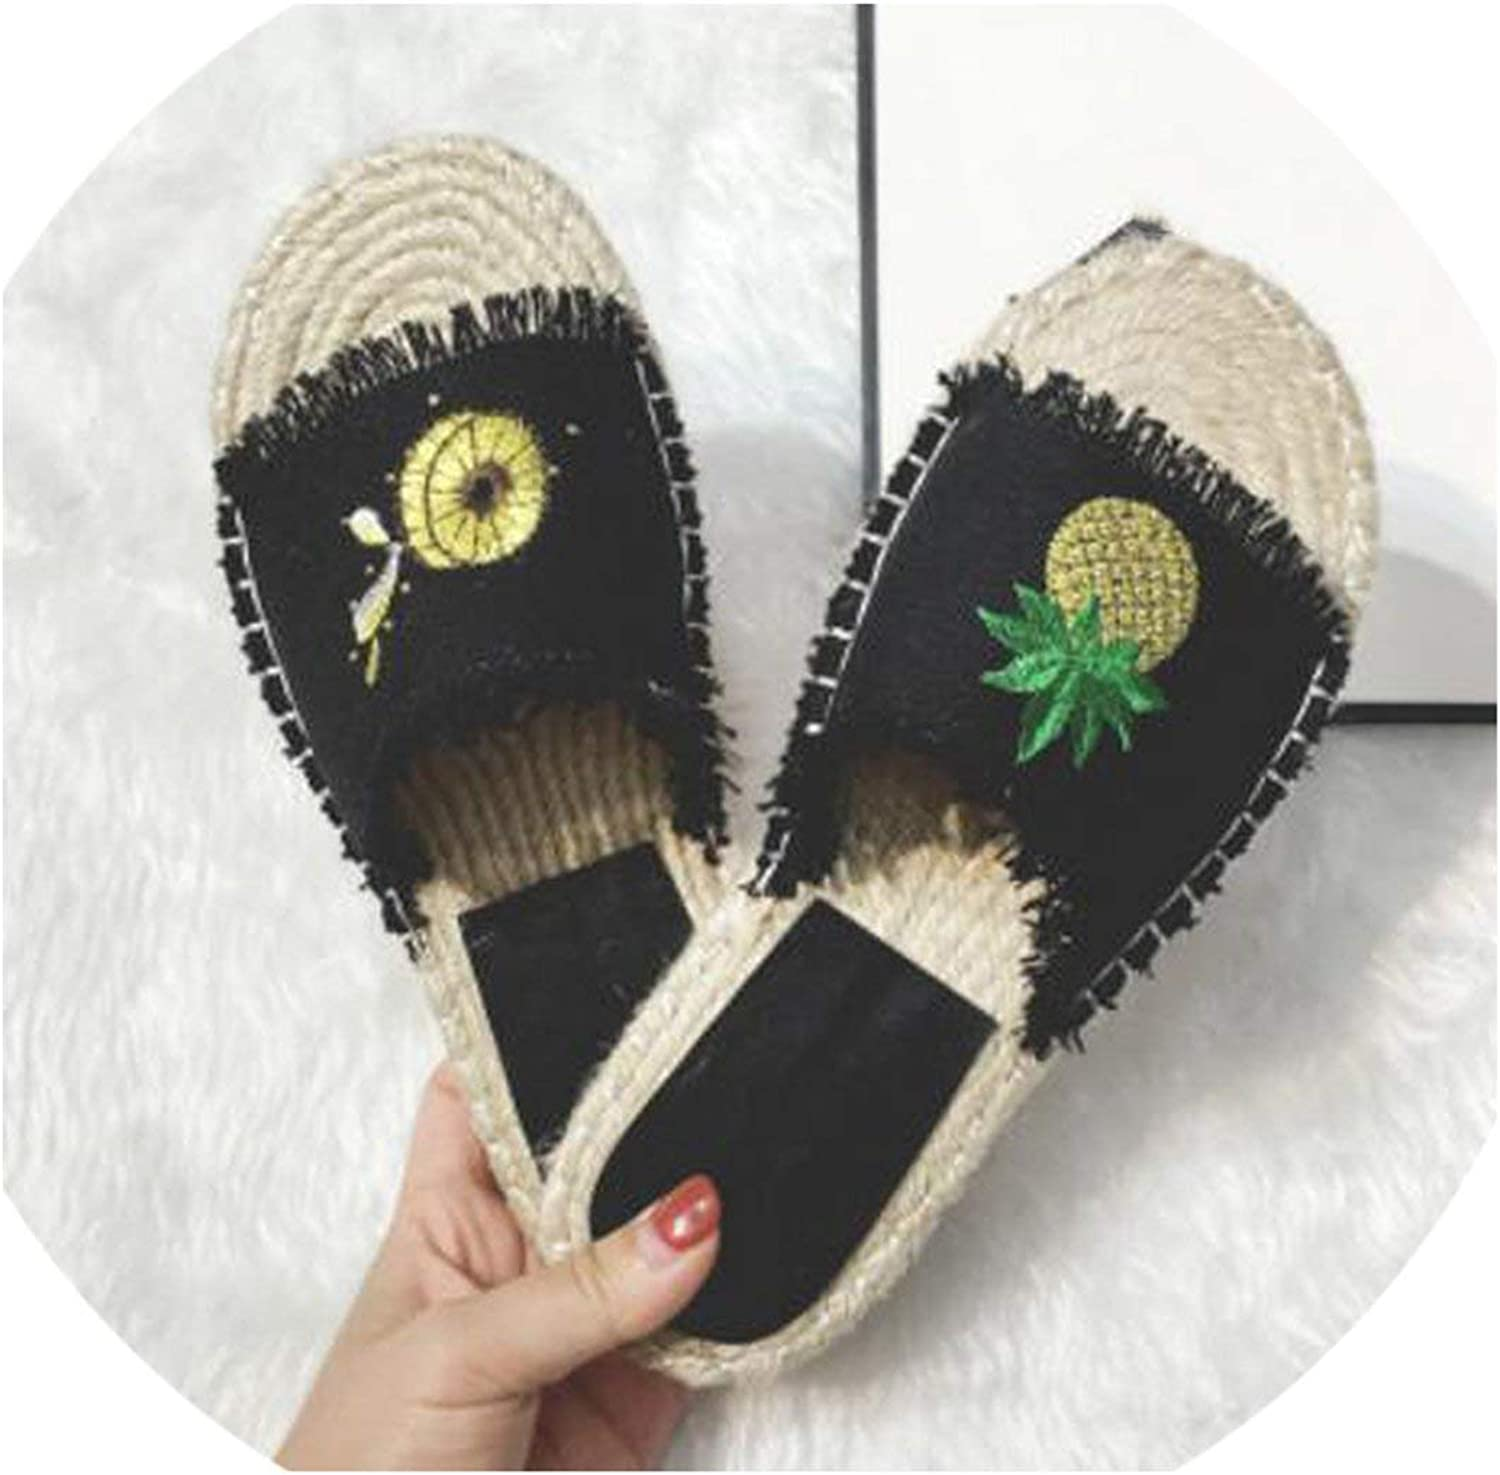 April With You Lemon and Pineapple Embroider Denim Slippers Women Straw Canvas Sandals Fringe Flat Slippers